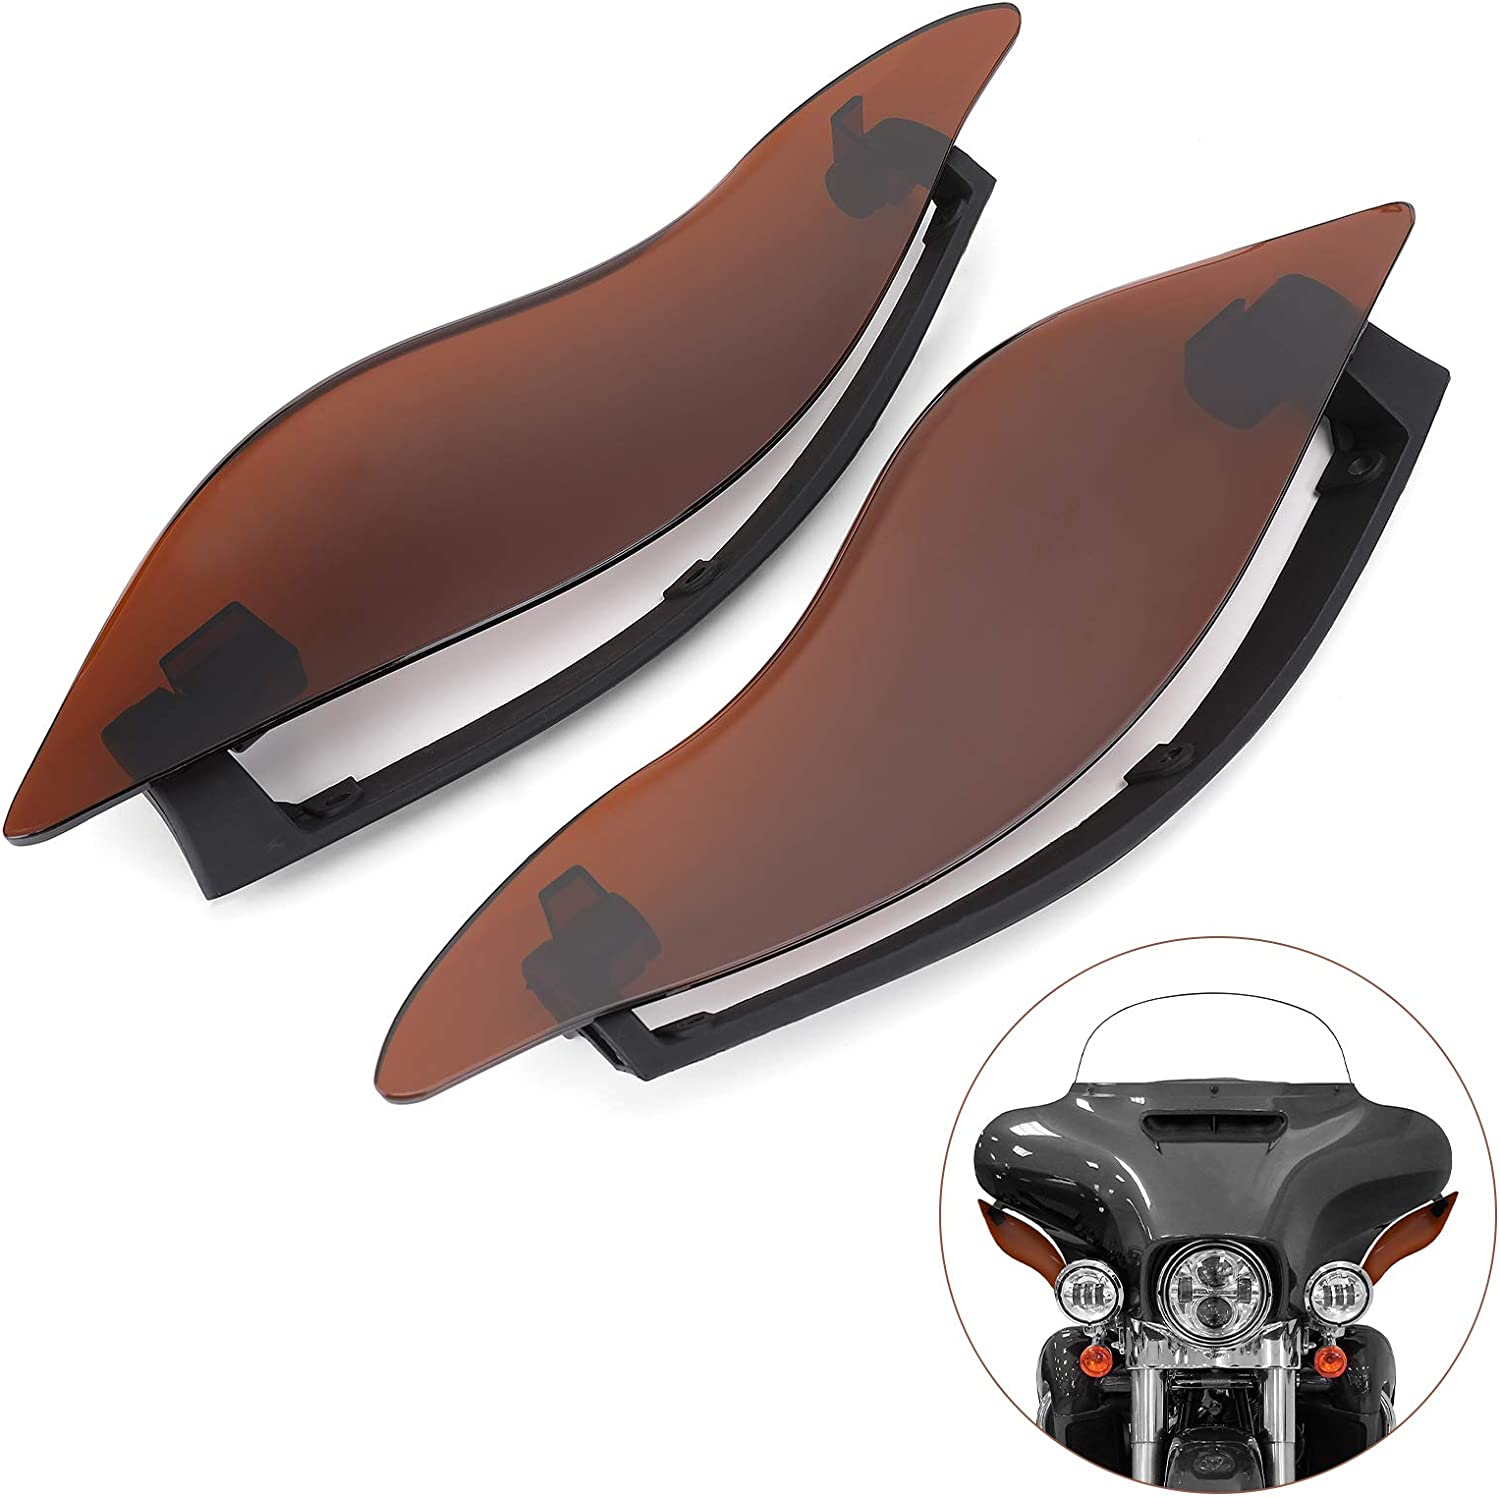 Air Deflectors Side Wings 2 Pcs Adjustable Windshield Fairing Side Cover Shield for 2014-2020 Touring Electra Street Tri Glide CVO Dark Smoke